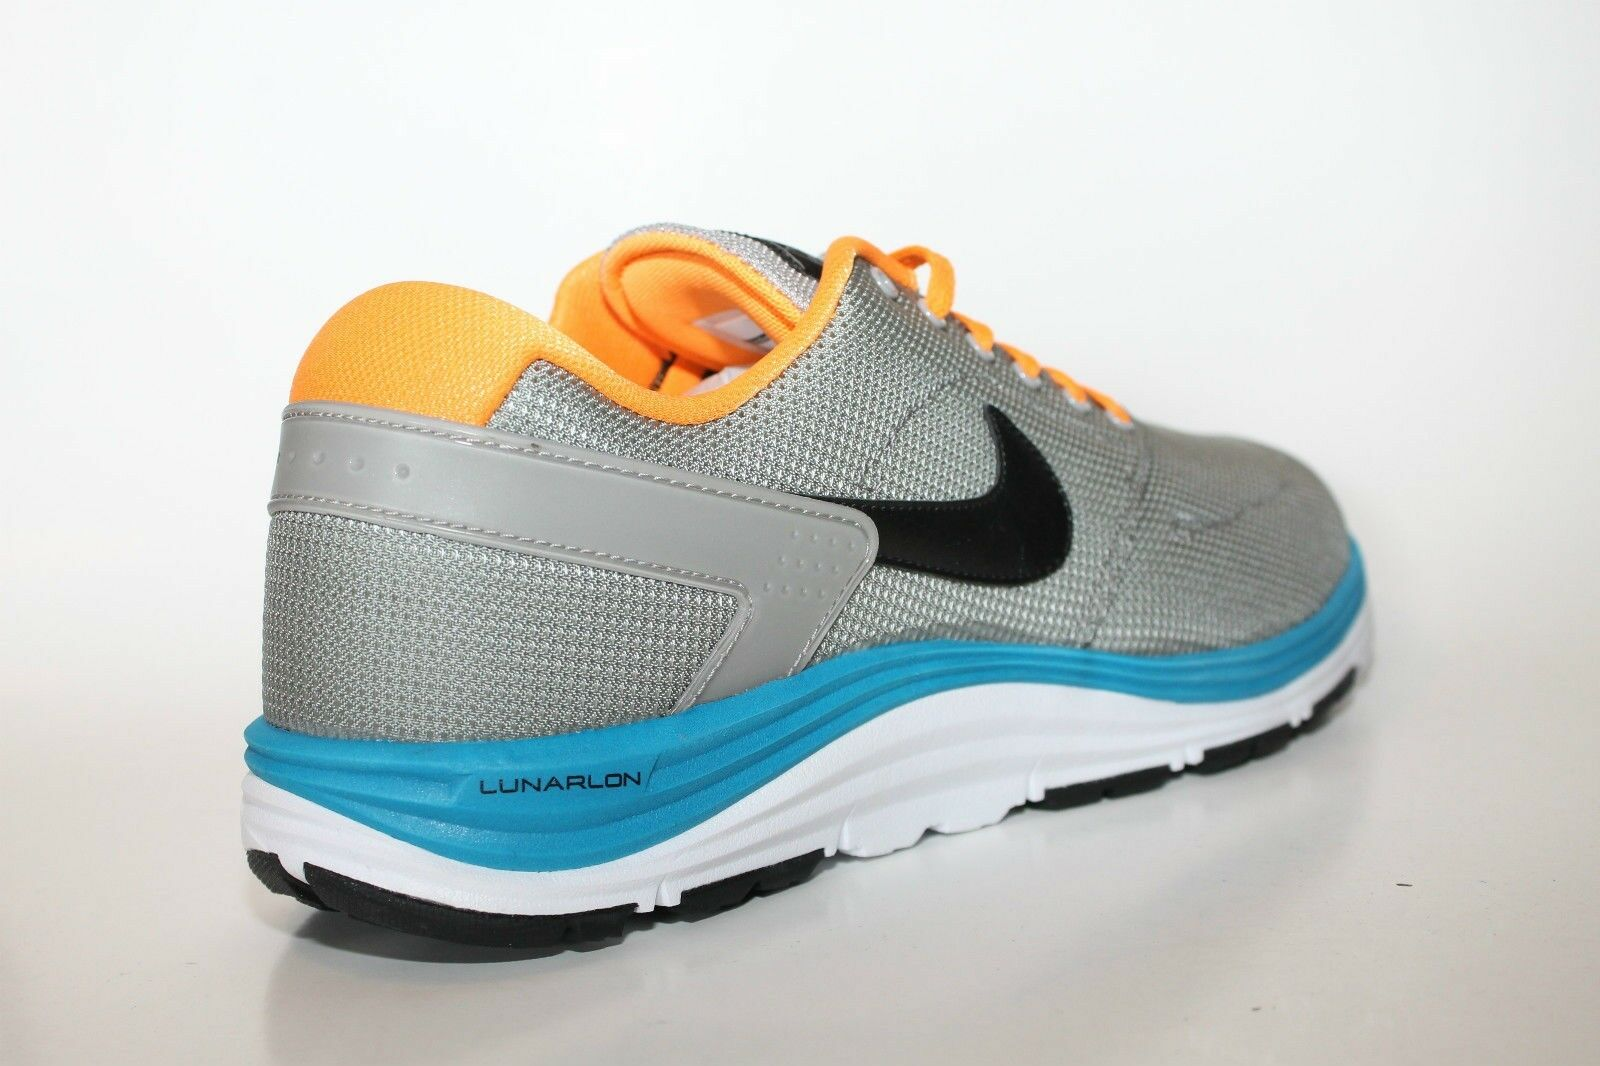 Nike Men's Lunar Rod Paul Rodriguez 537693-003 Grey Citrus New In Box Comfortable